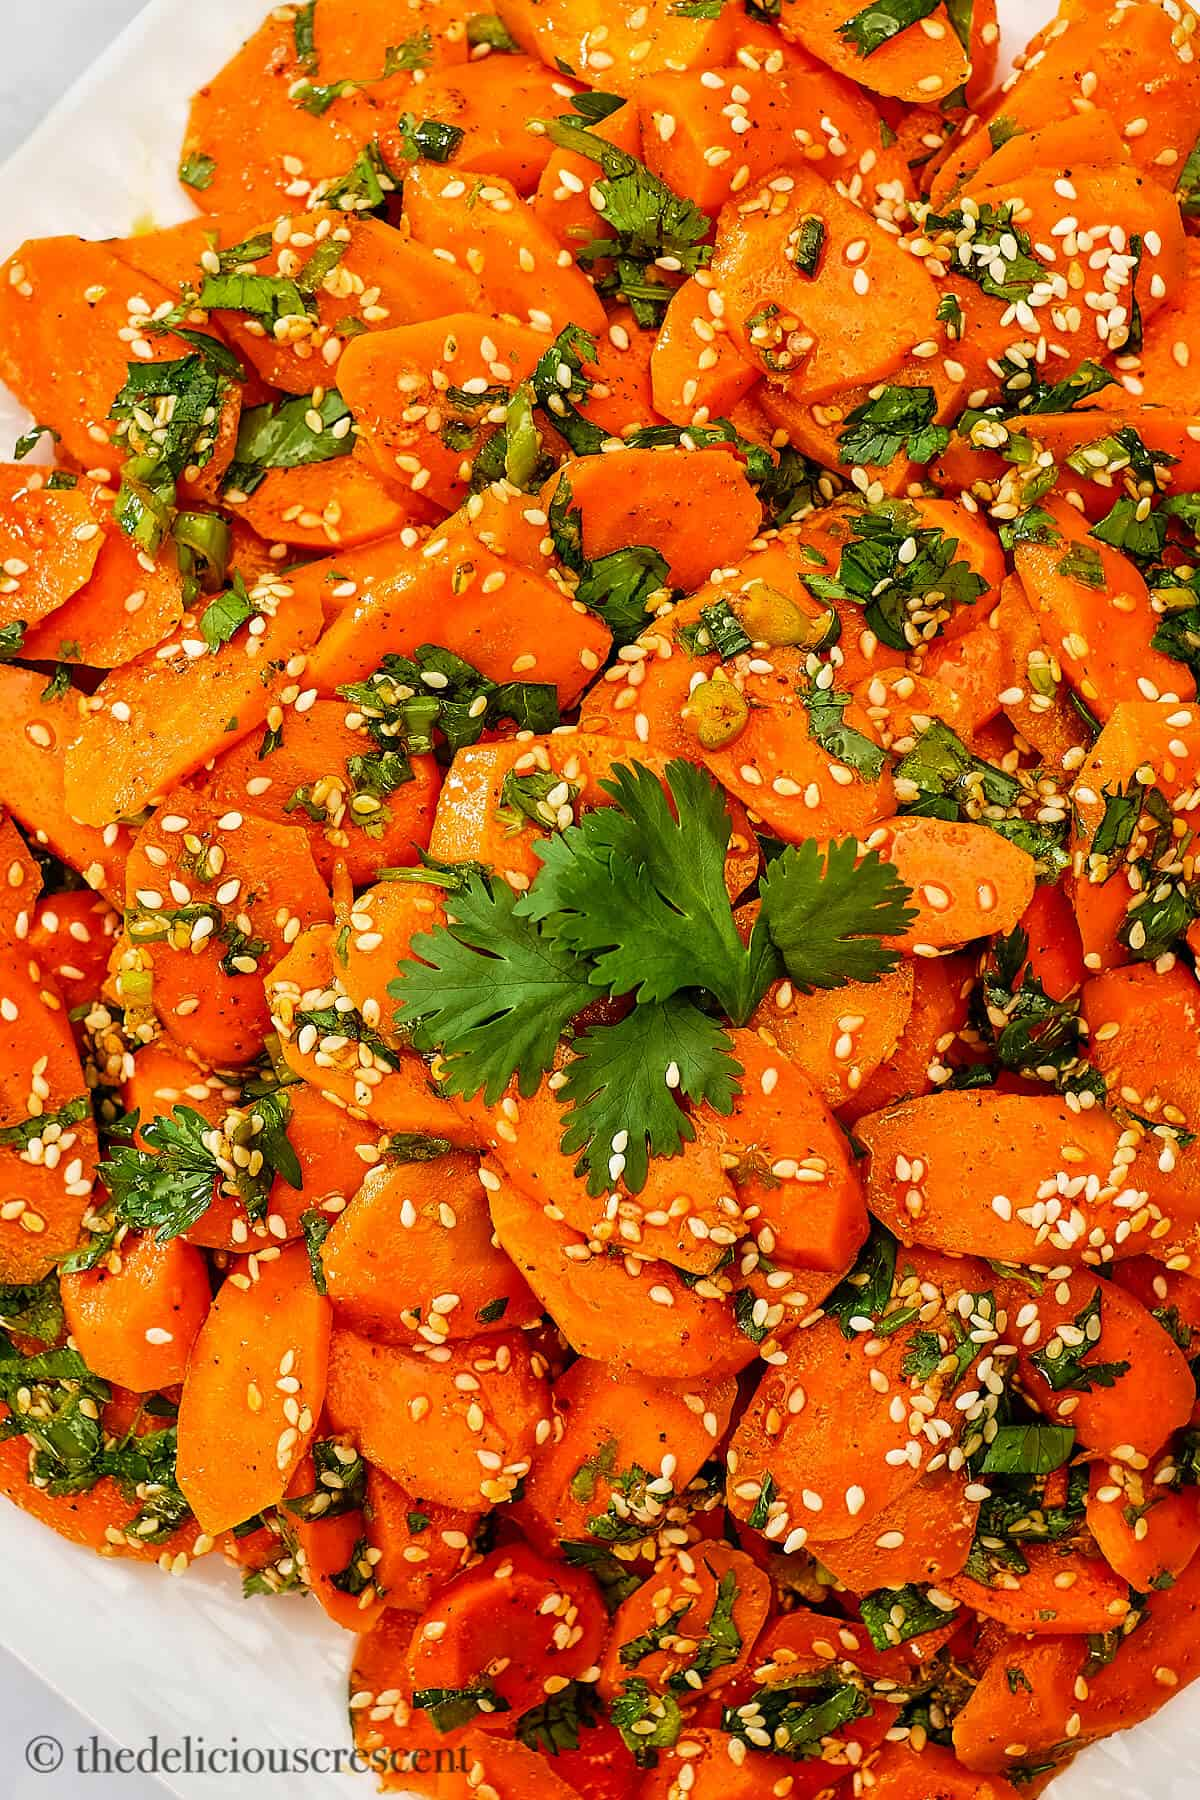 Spiced carrot salad garnished with herbs and sesame seeds.